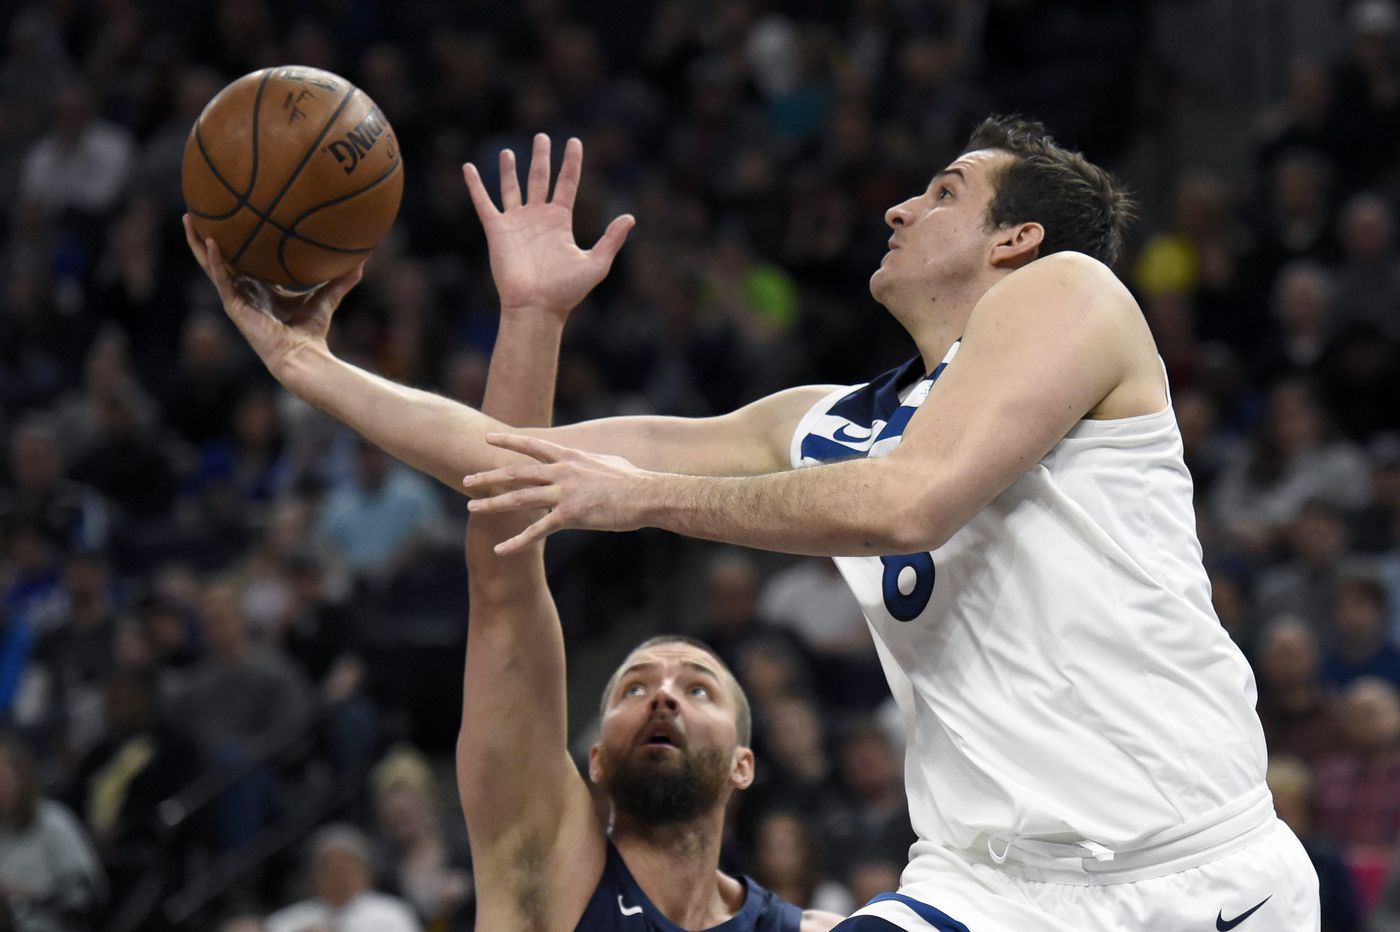 Nemanja Bjelica, after spurning Sixers, reportedly discussing deal with Kings